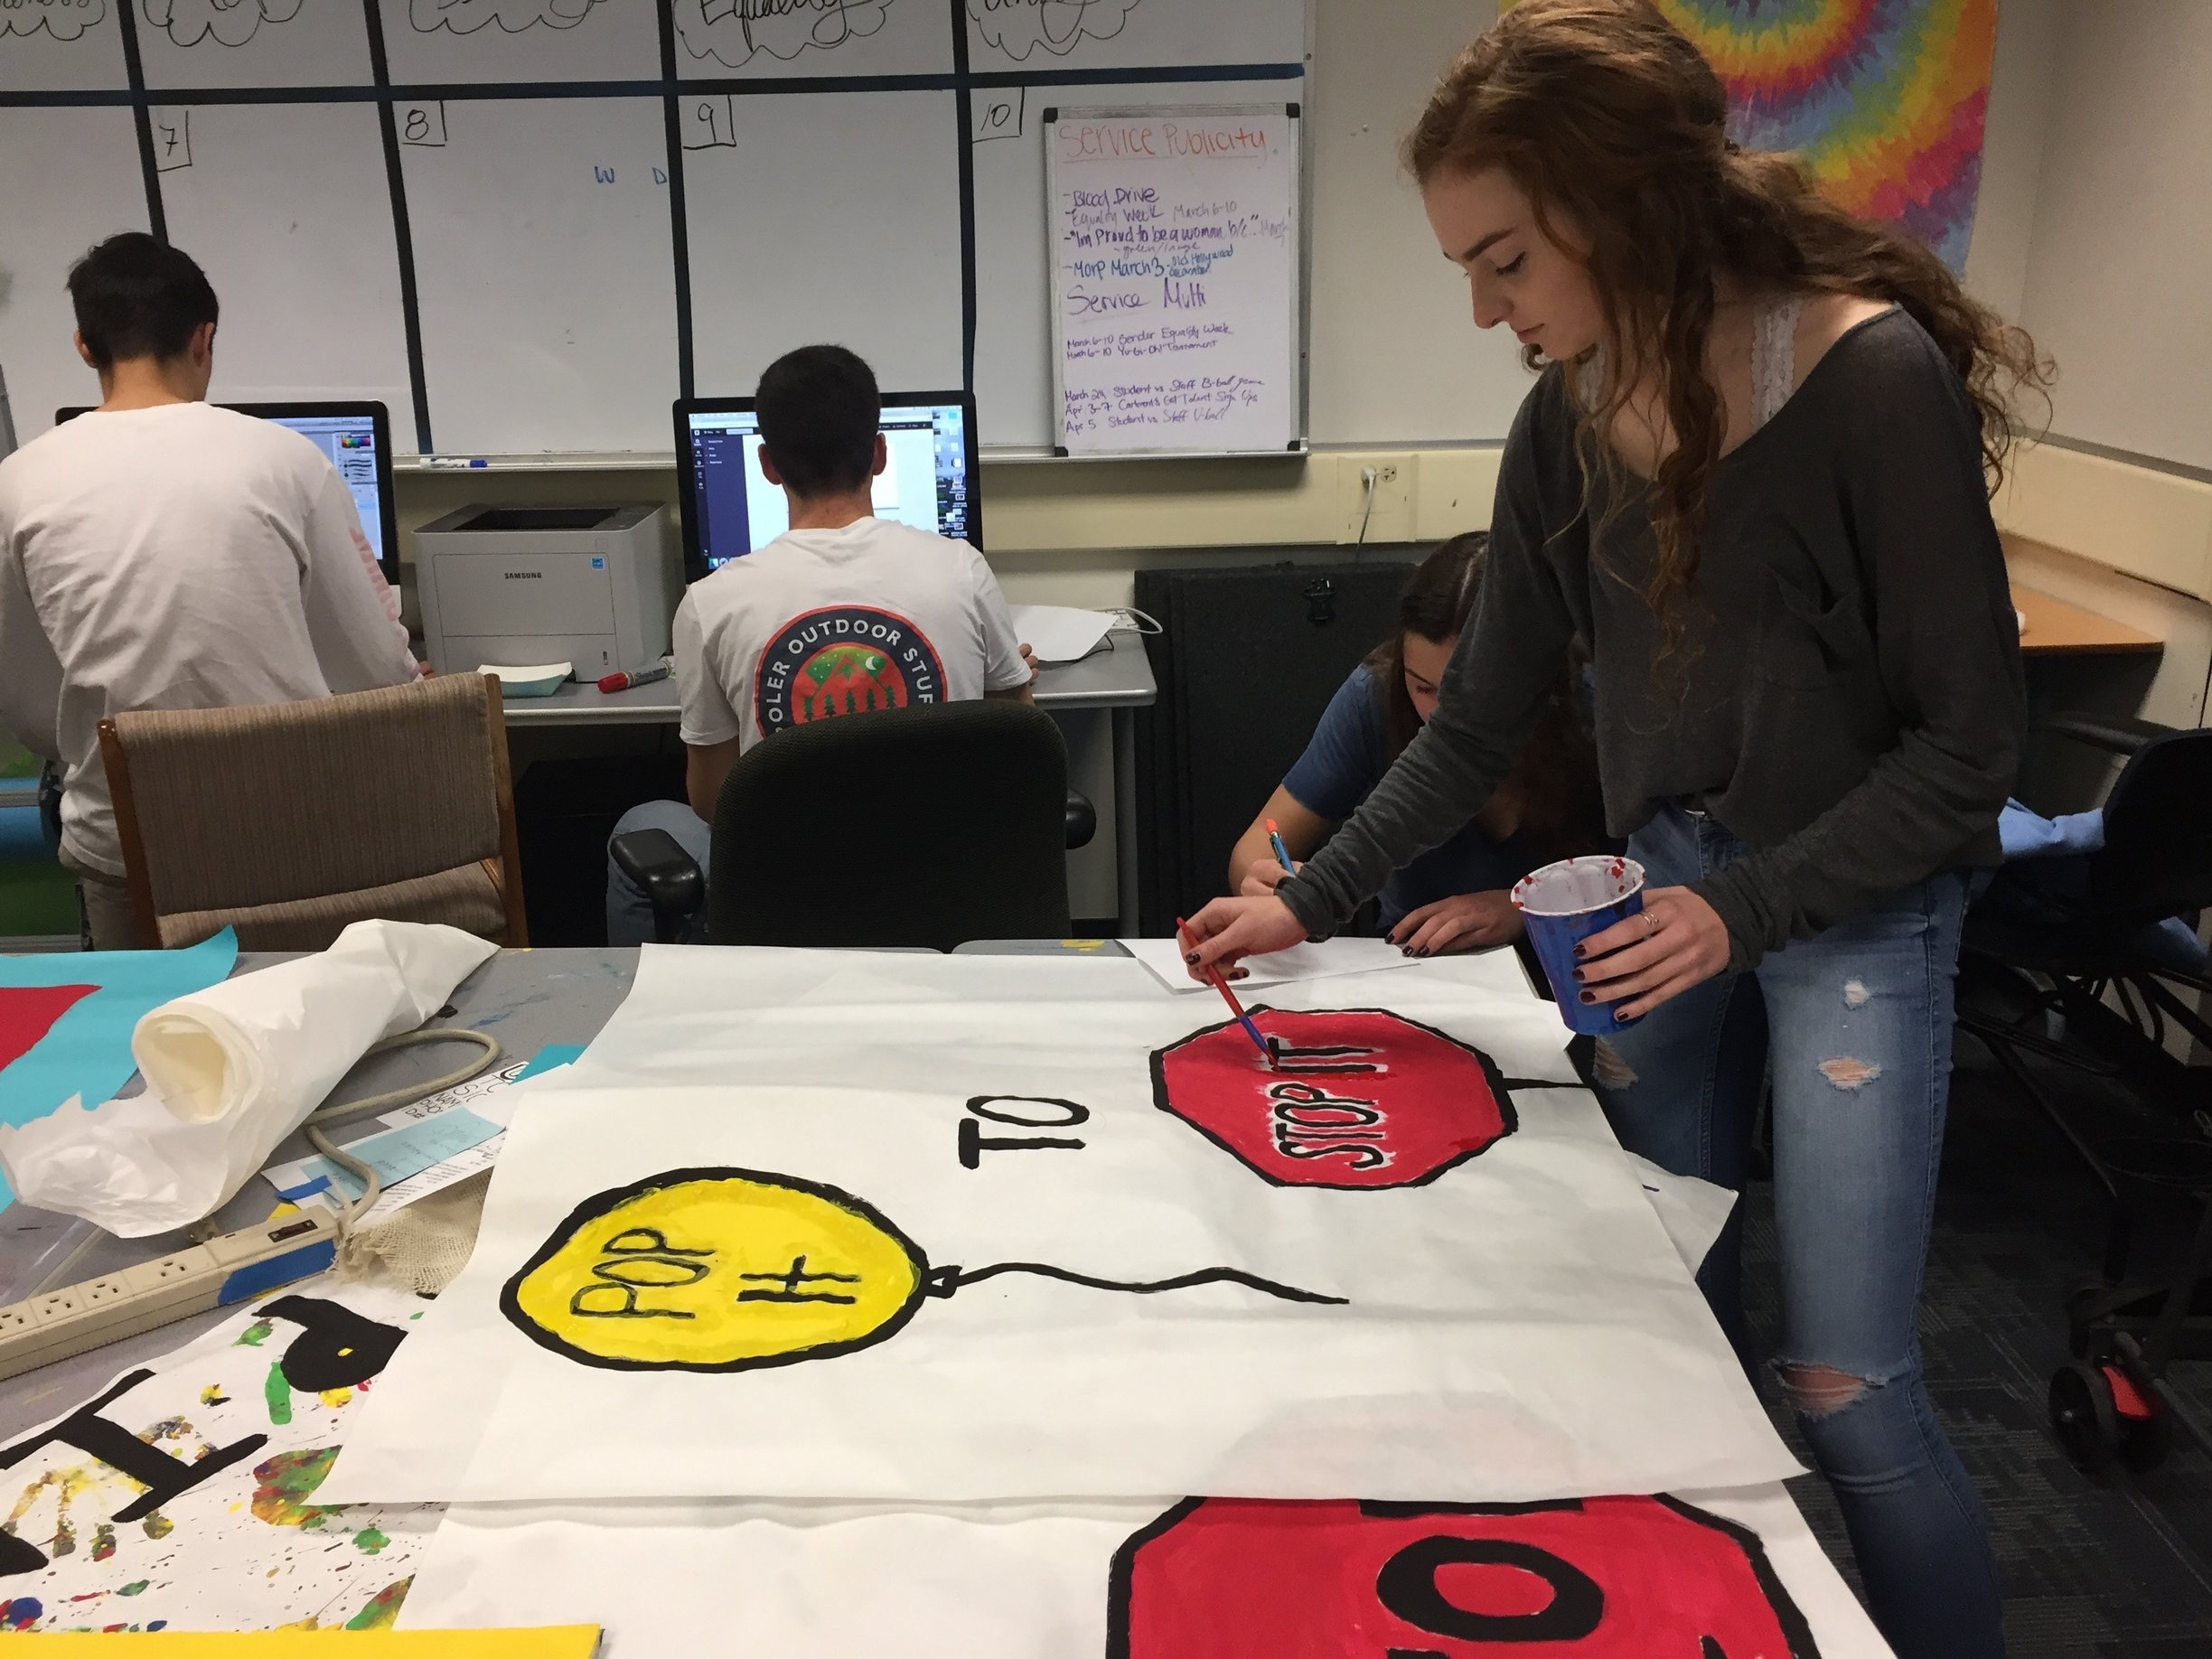 Maddie Standlee, a member of the Human Relations Commission, works on posters to spread awareness for Gender Equality Week. She paints a stop sign to advertise for the